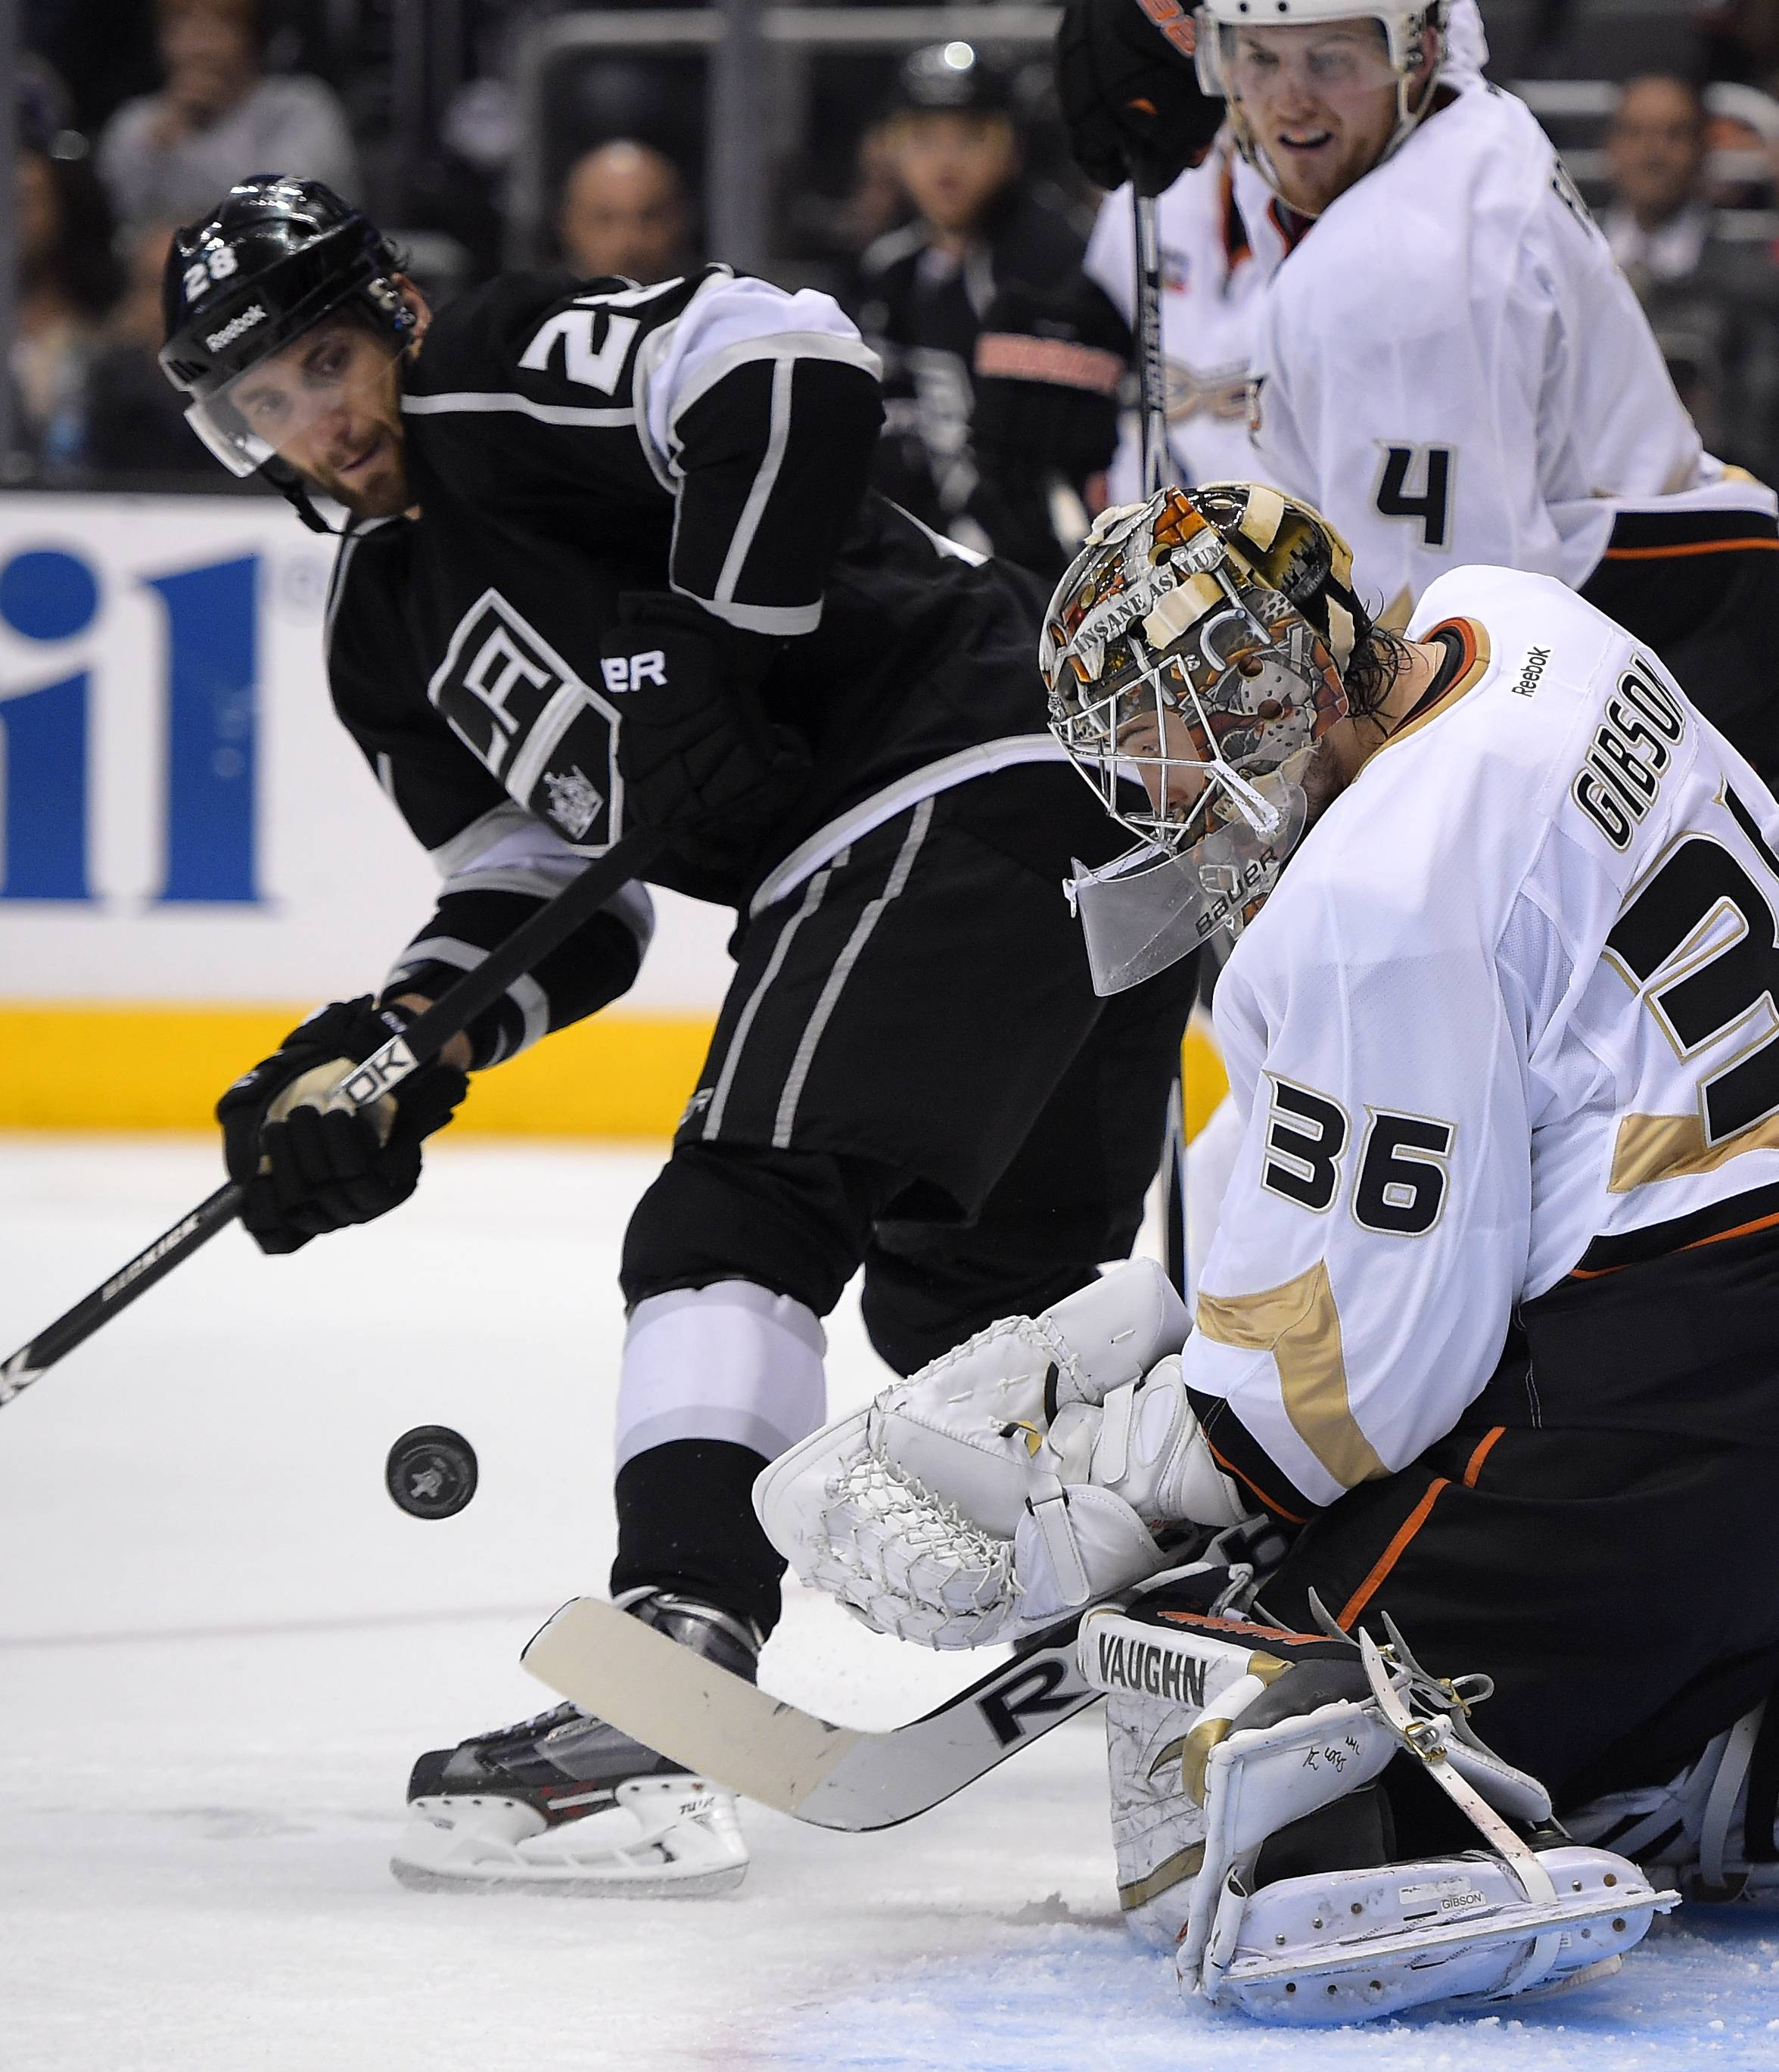 Anaheim Ducks goalie John Gibson has stopped 67 of 70 shots in his first two NHL playoff starts. The Ducks lead the Los Angeles Kings 3-2 in the best-of-seven series.